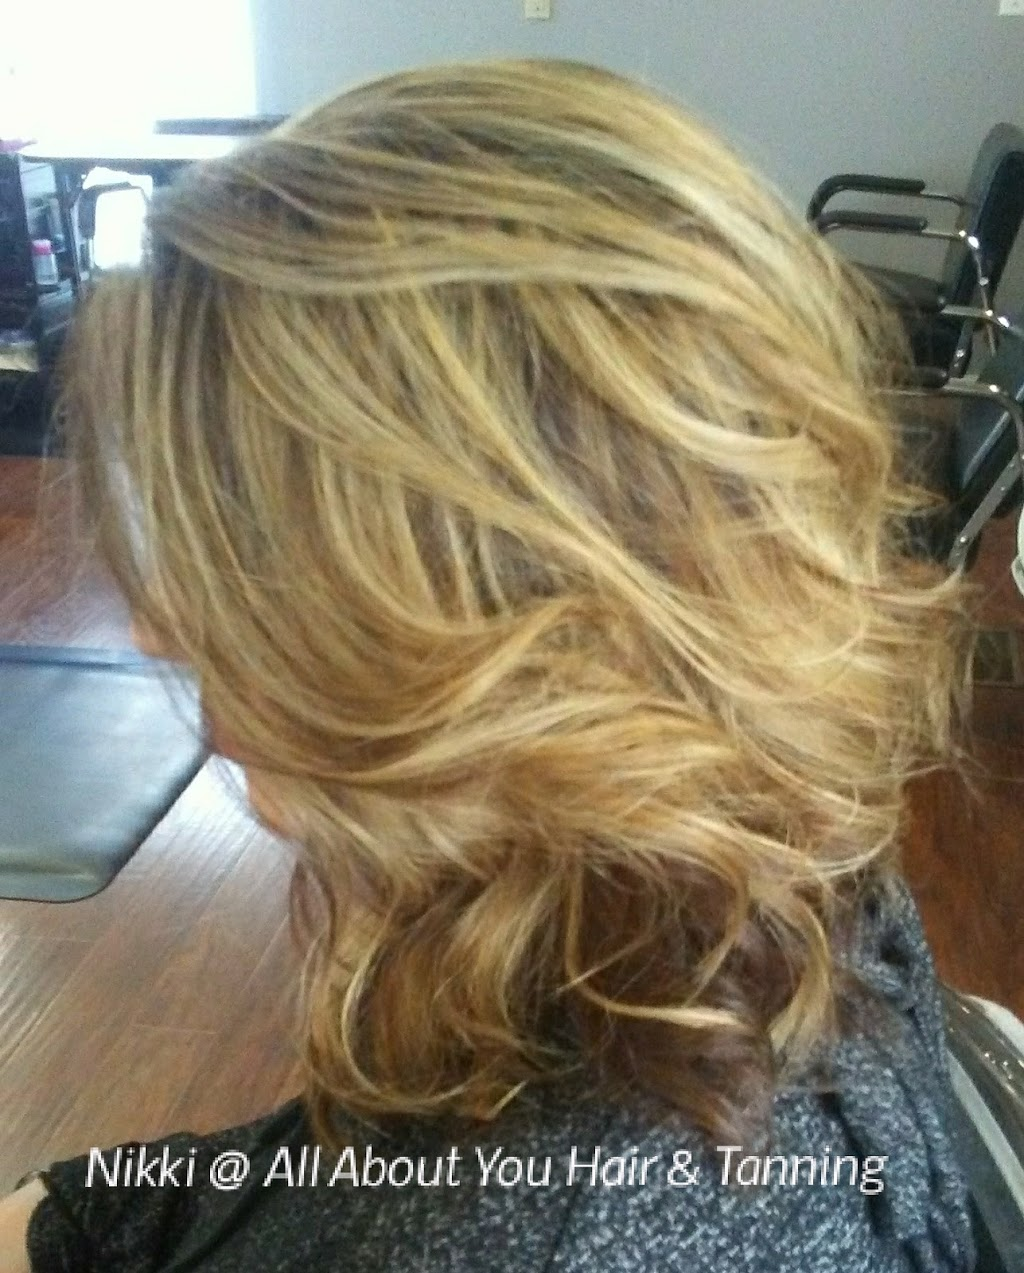 Nikki at All About You Hair Salon and Tanning - hair care    Photo 1 of 10   Address: 9075 1200 N, De Motte, IN 46310, USA   Phone: (765) 761-7119